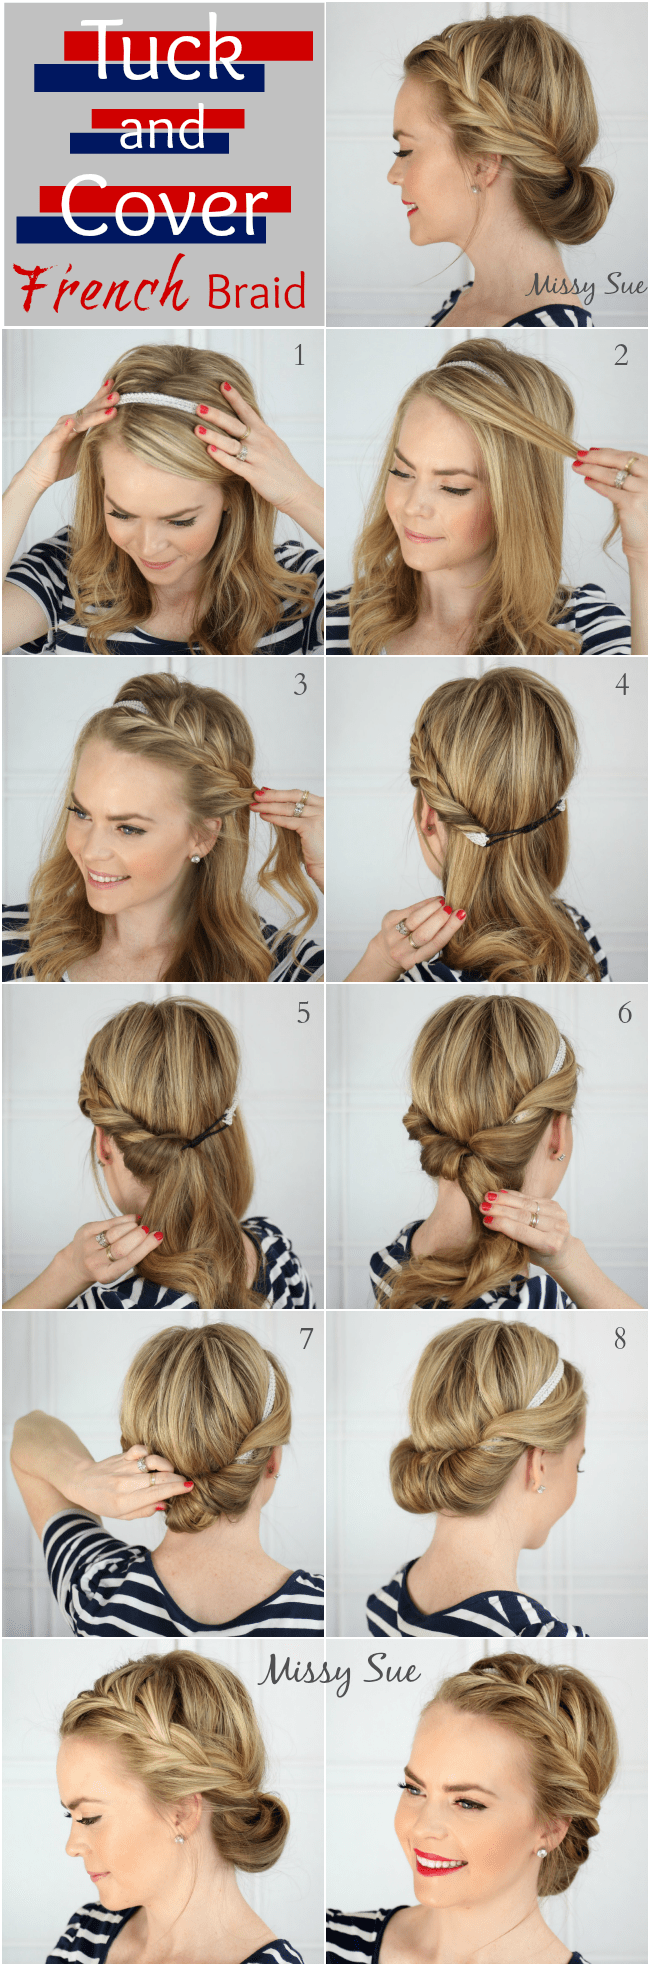 tuck and cover french braid missy sue blog hair tutorial Braid 7 Tuck and Cover French Braid